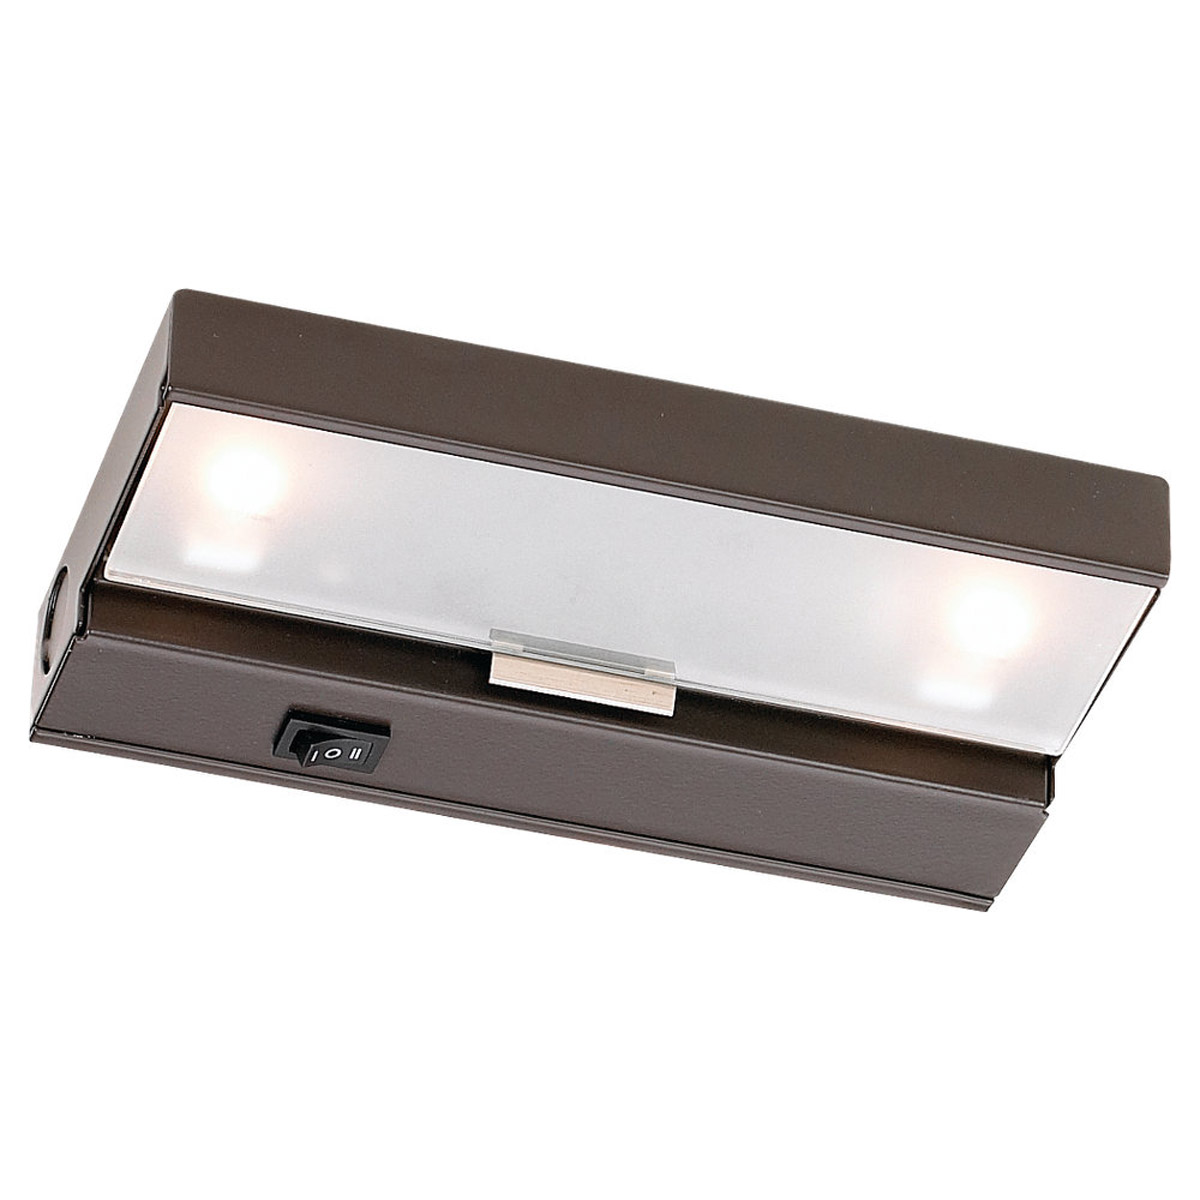 Sea Gull Lighting Undercabinet Lighting 2 Light Undercabinet Xenon in Antique Bronze 98018-71